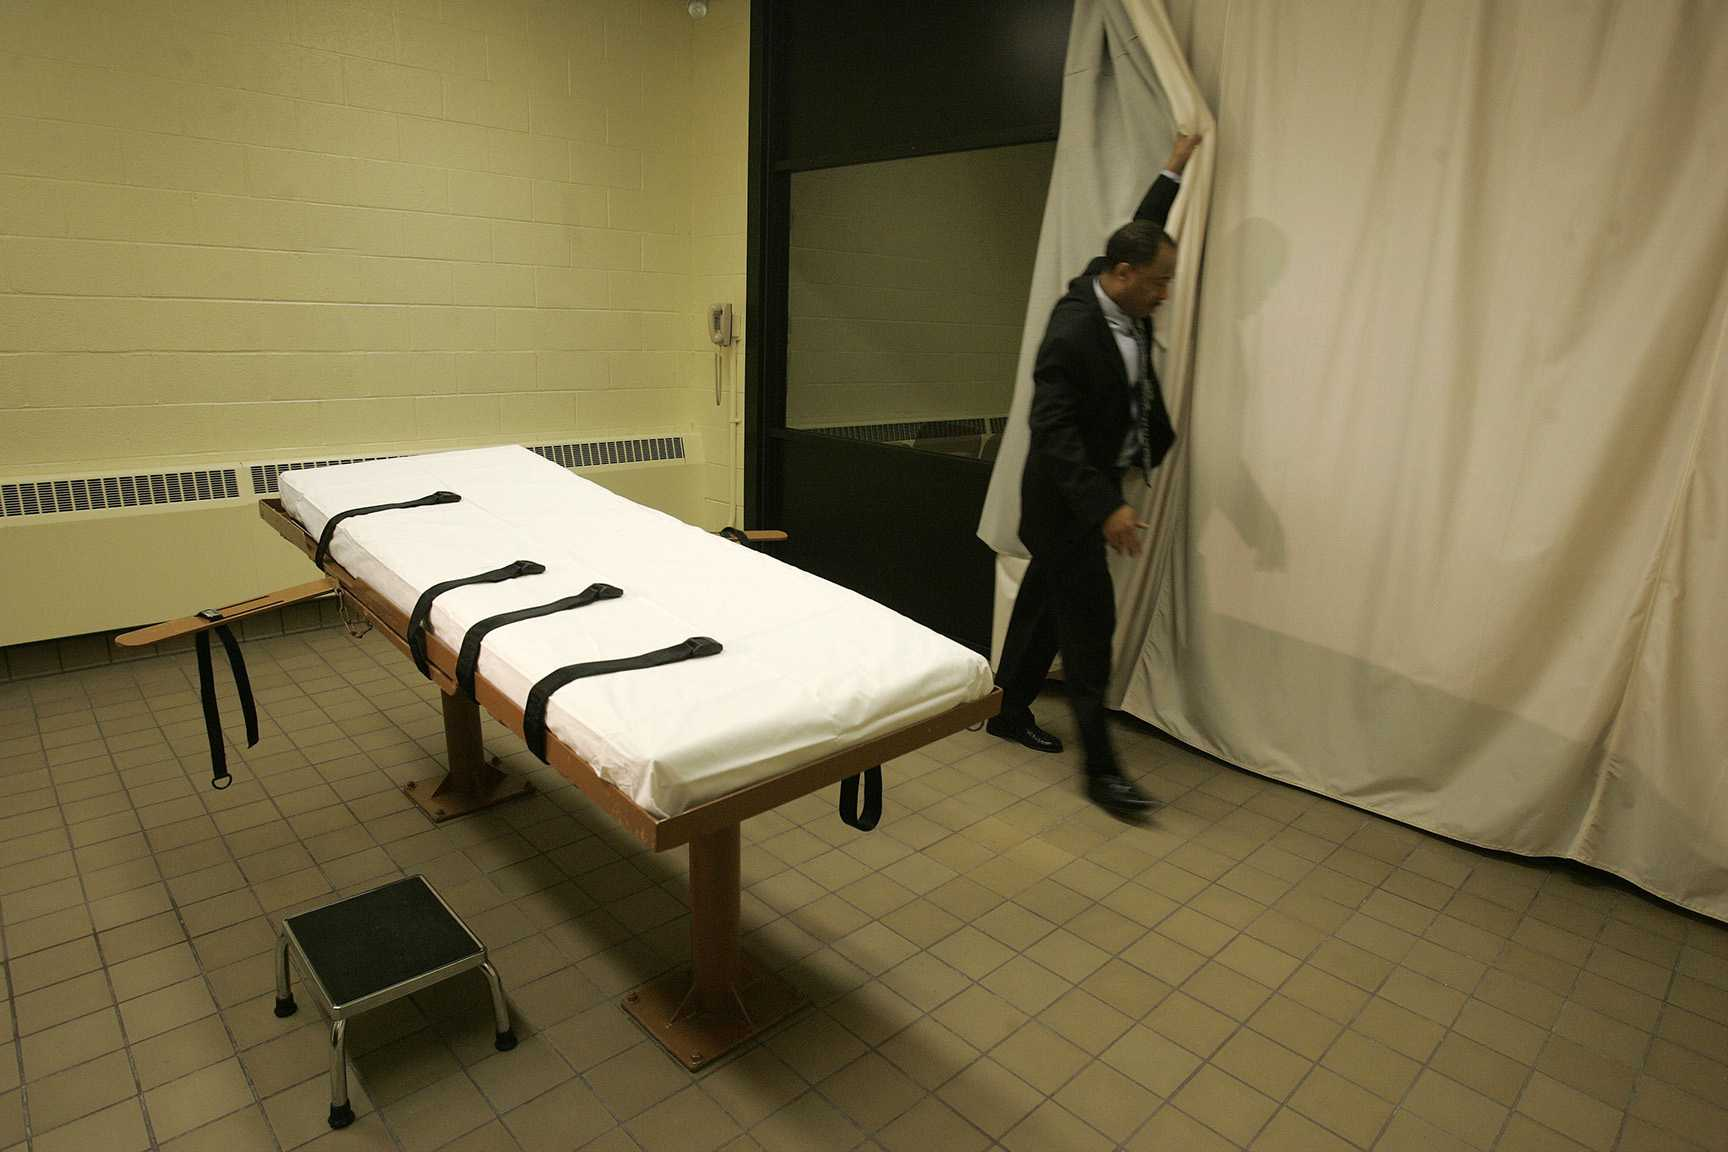 FILE - This Nov. 5, 2005 file photo, shows the death chamber at the Southern Ohio Corrections Facility in Lucasville, Ohio. A federal judge ruled Monday, Oct. 26, 2015, that Ohio can shield the identity of people or entities involving in obtaining or using lethal injection drugs for executions, rejecting defense attorneys' arguments that the information should be disclosed.  (AP Photo/Kiichiro Sato, File)